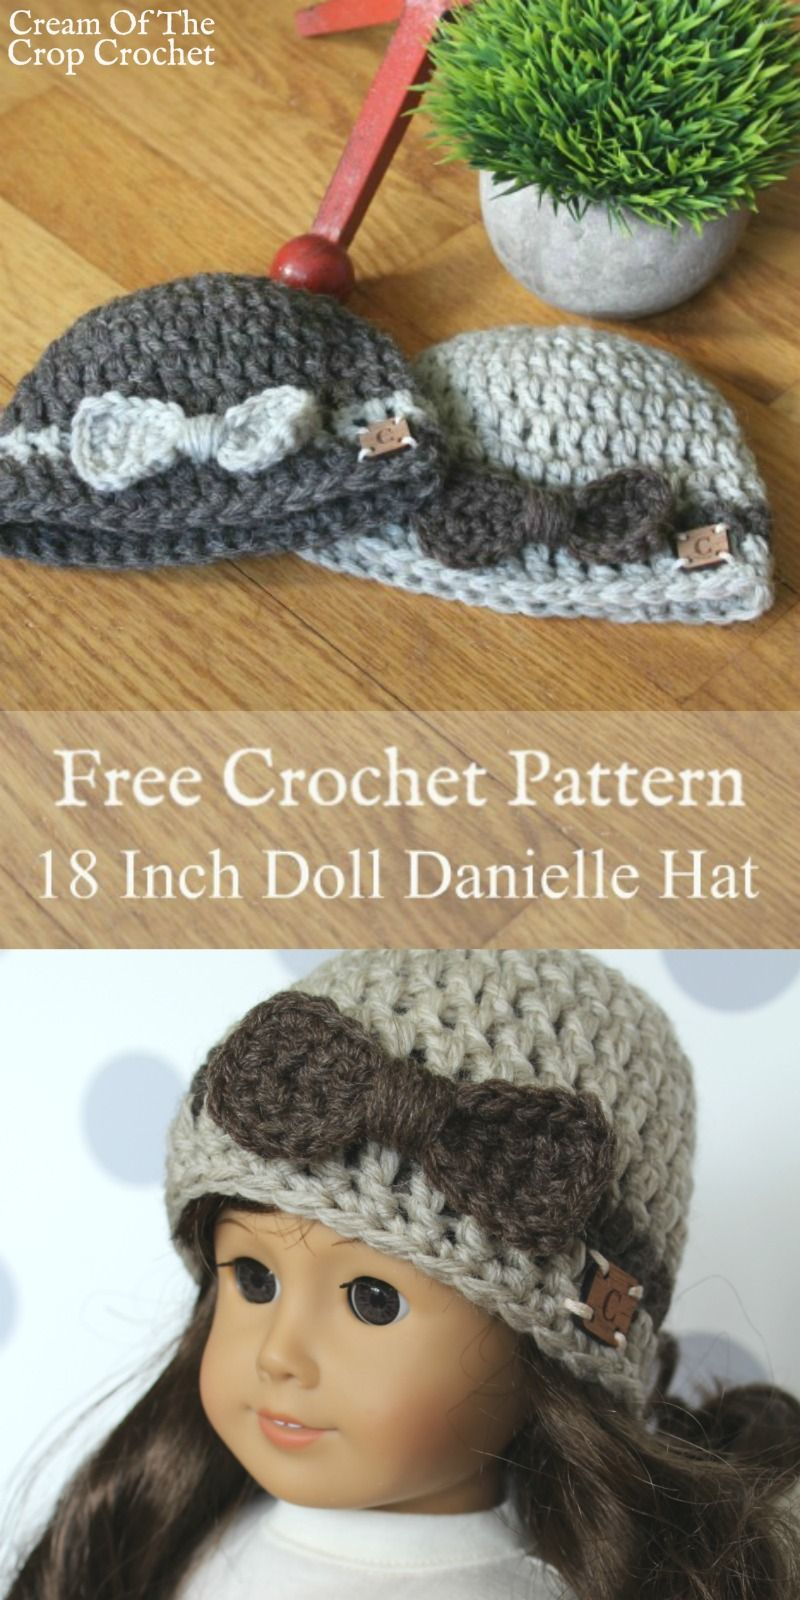 Free Knitting Patterns For Dolls Hats Free Crochet Patterns For 18 Inch Dolls 18 Inch Doll Danielle Hat